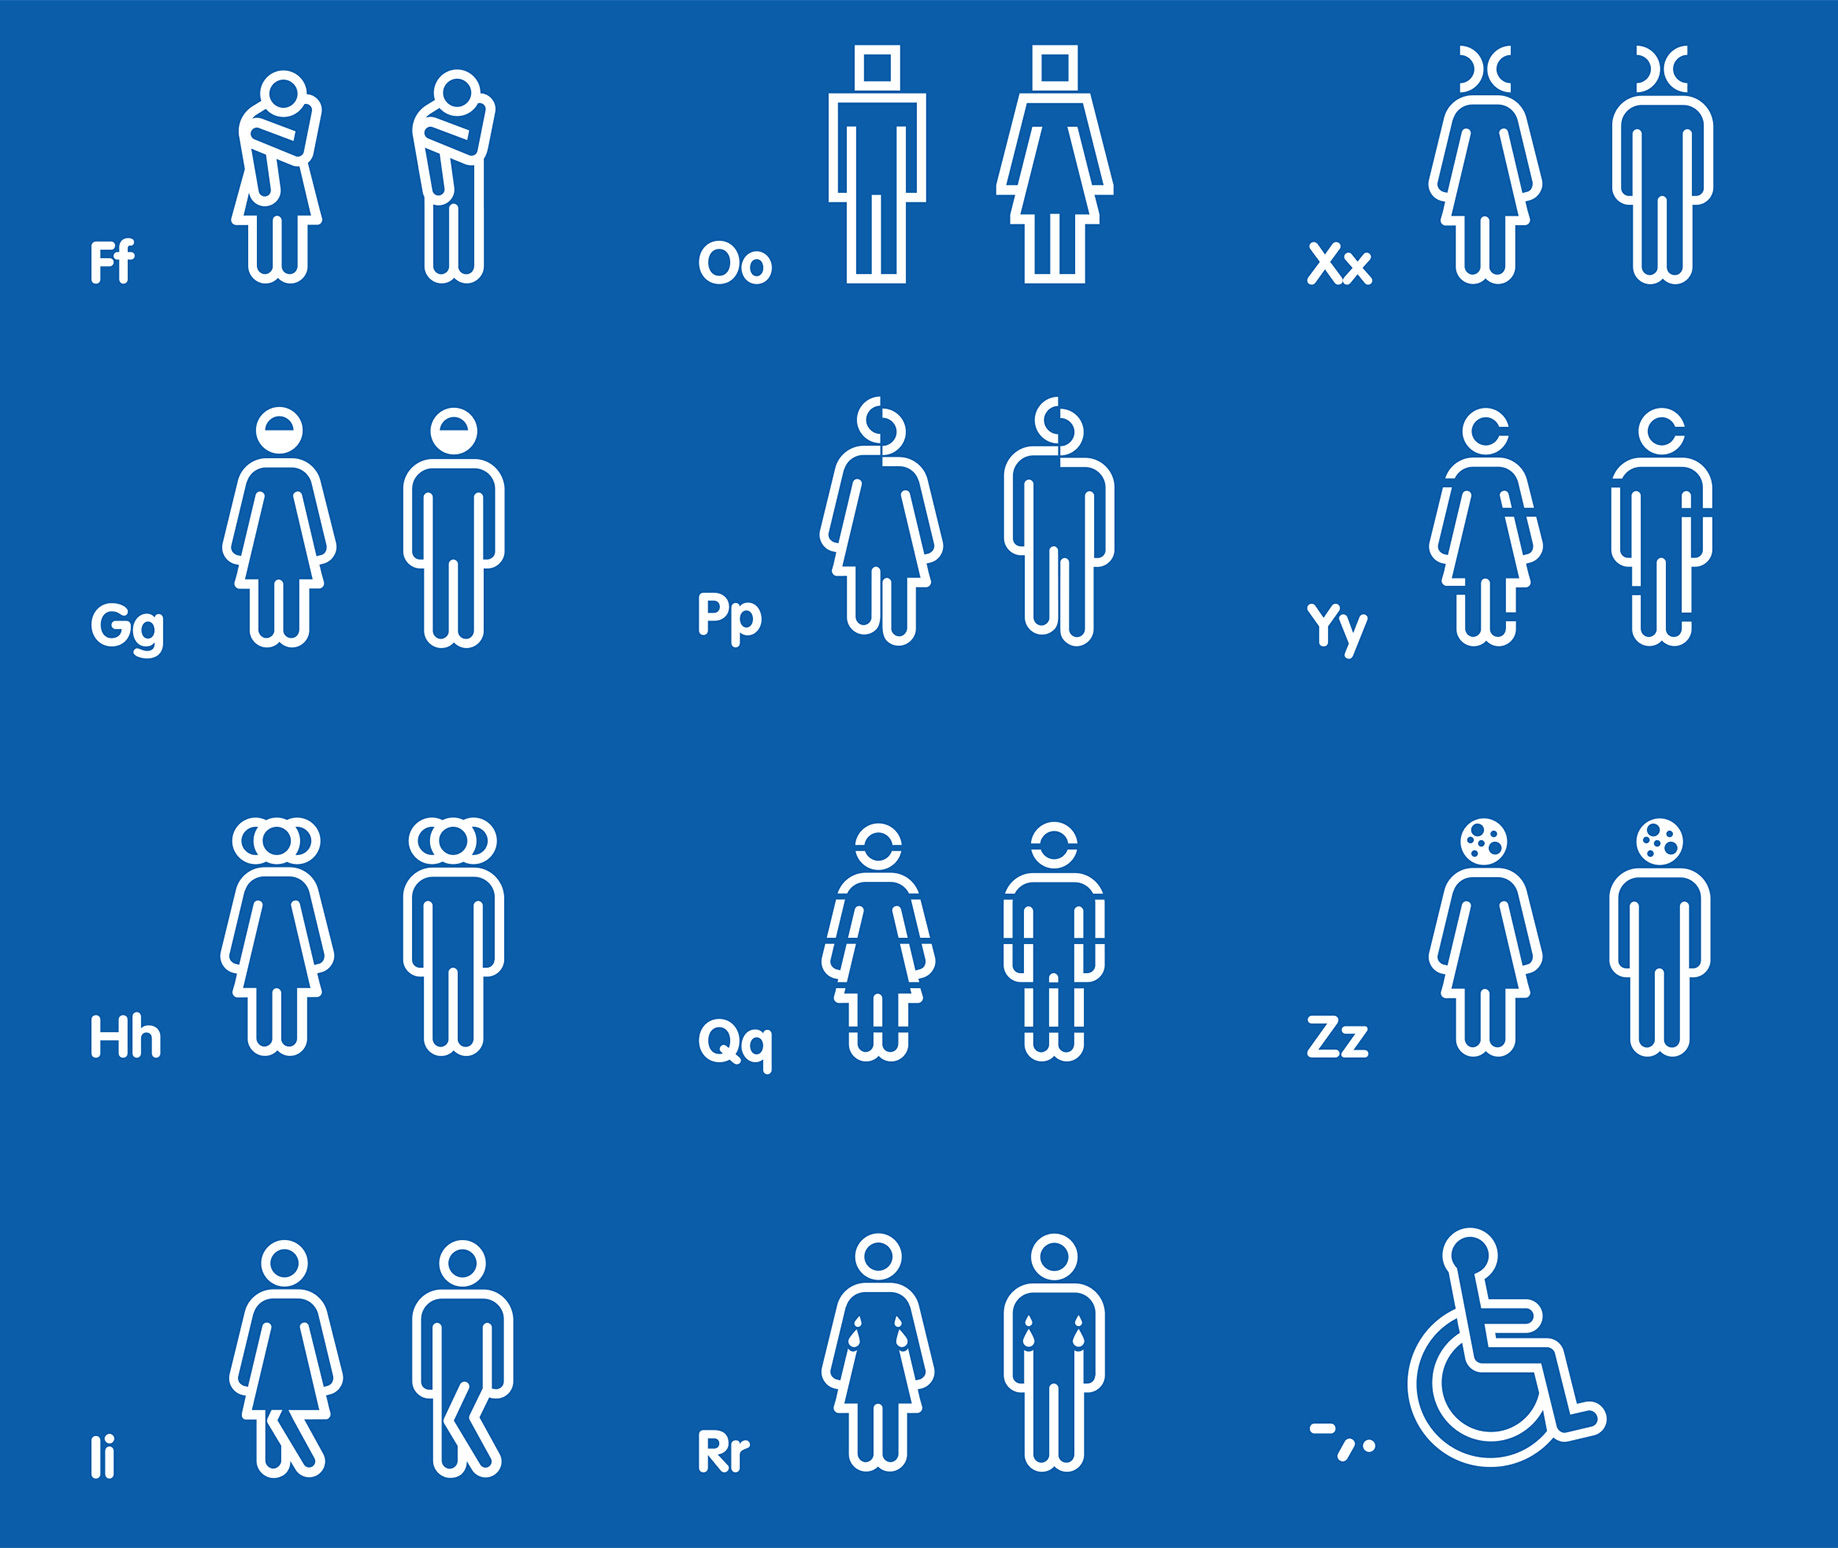 These Designers Have Reimagined The Wheelchair Symbol To Include